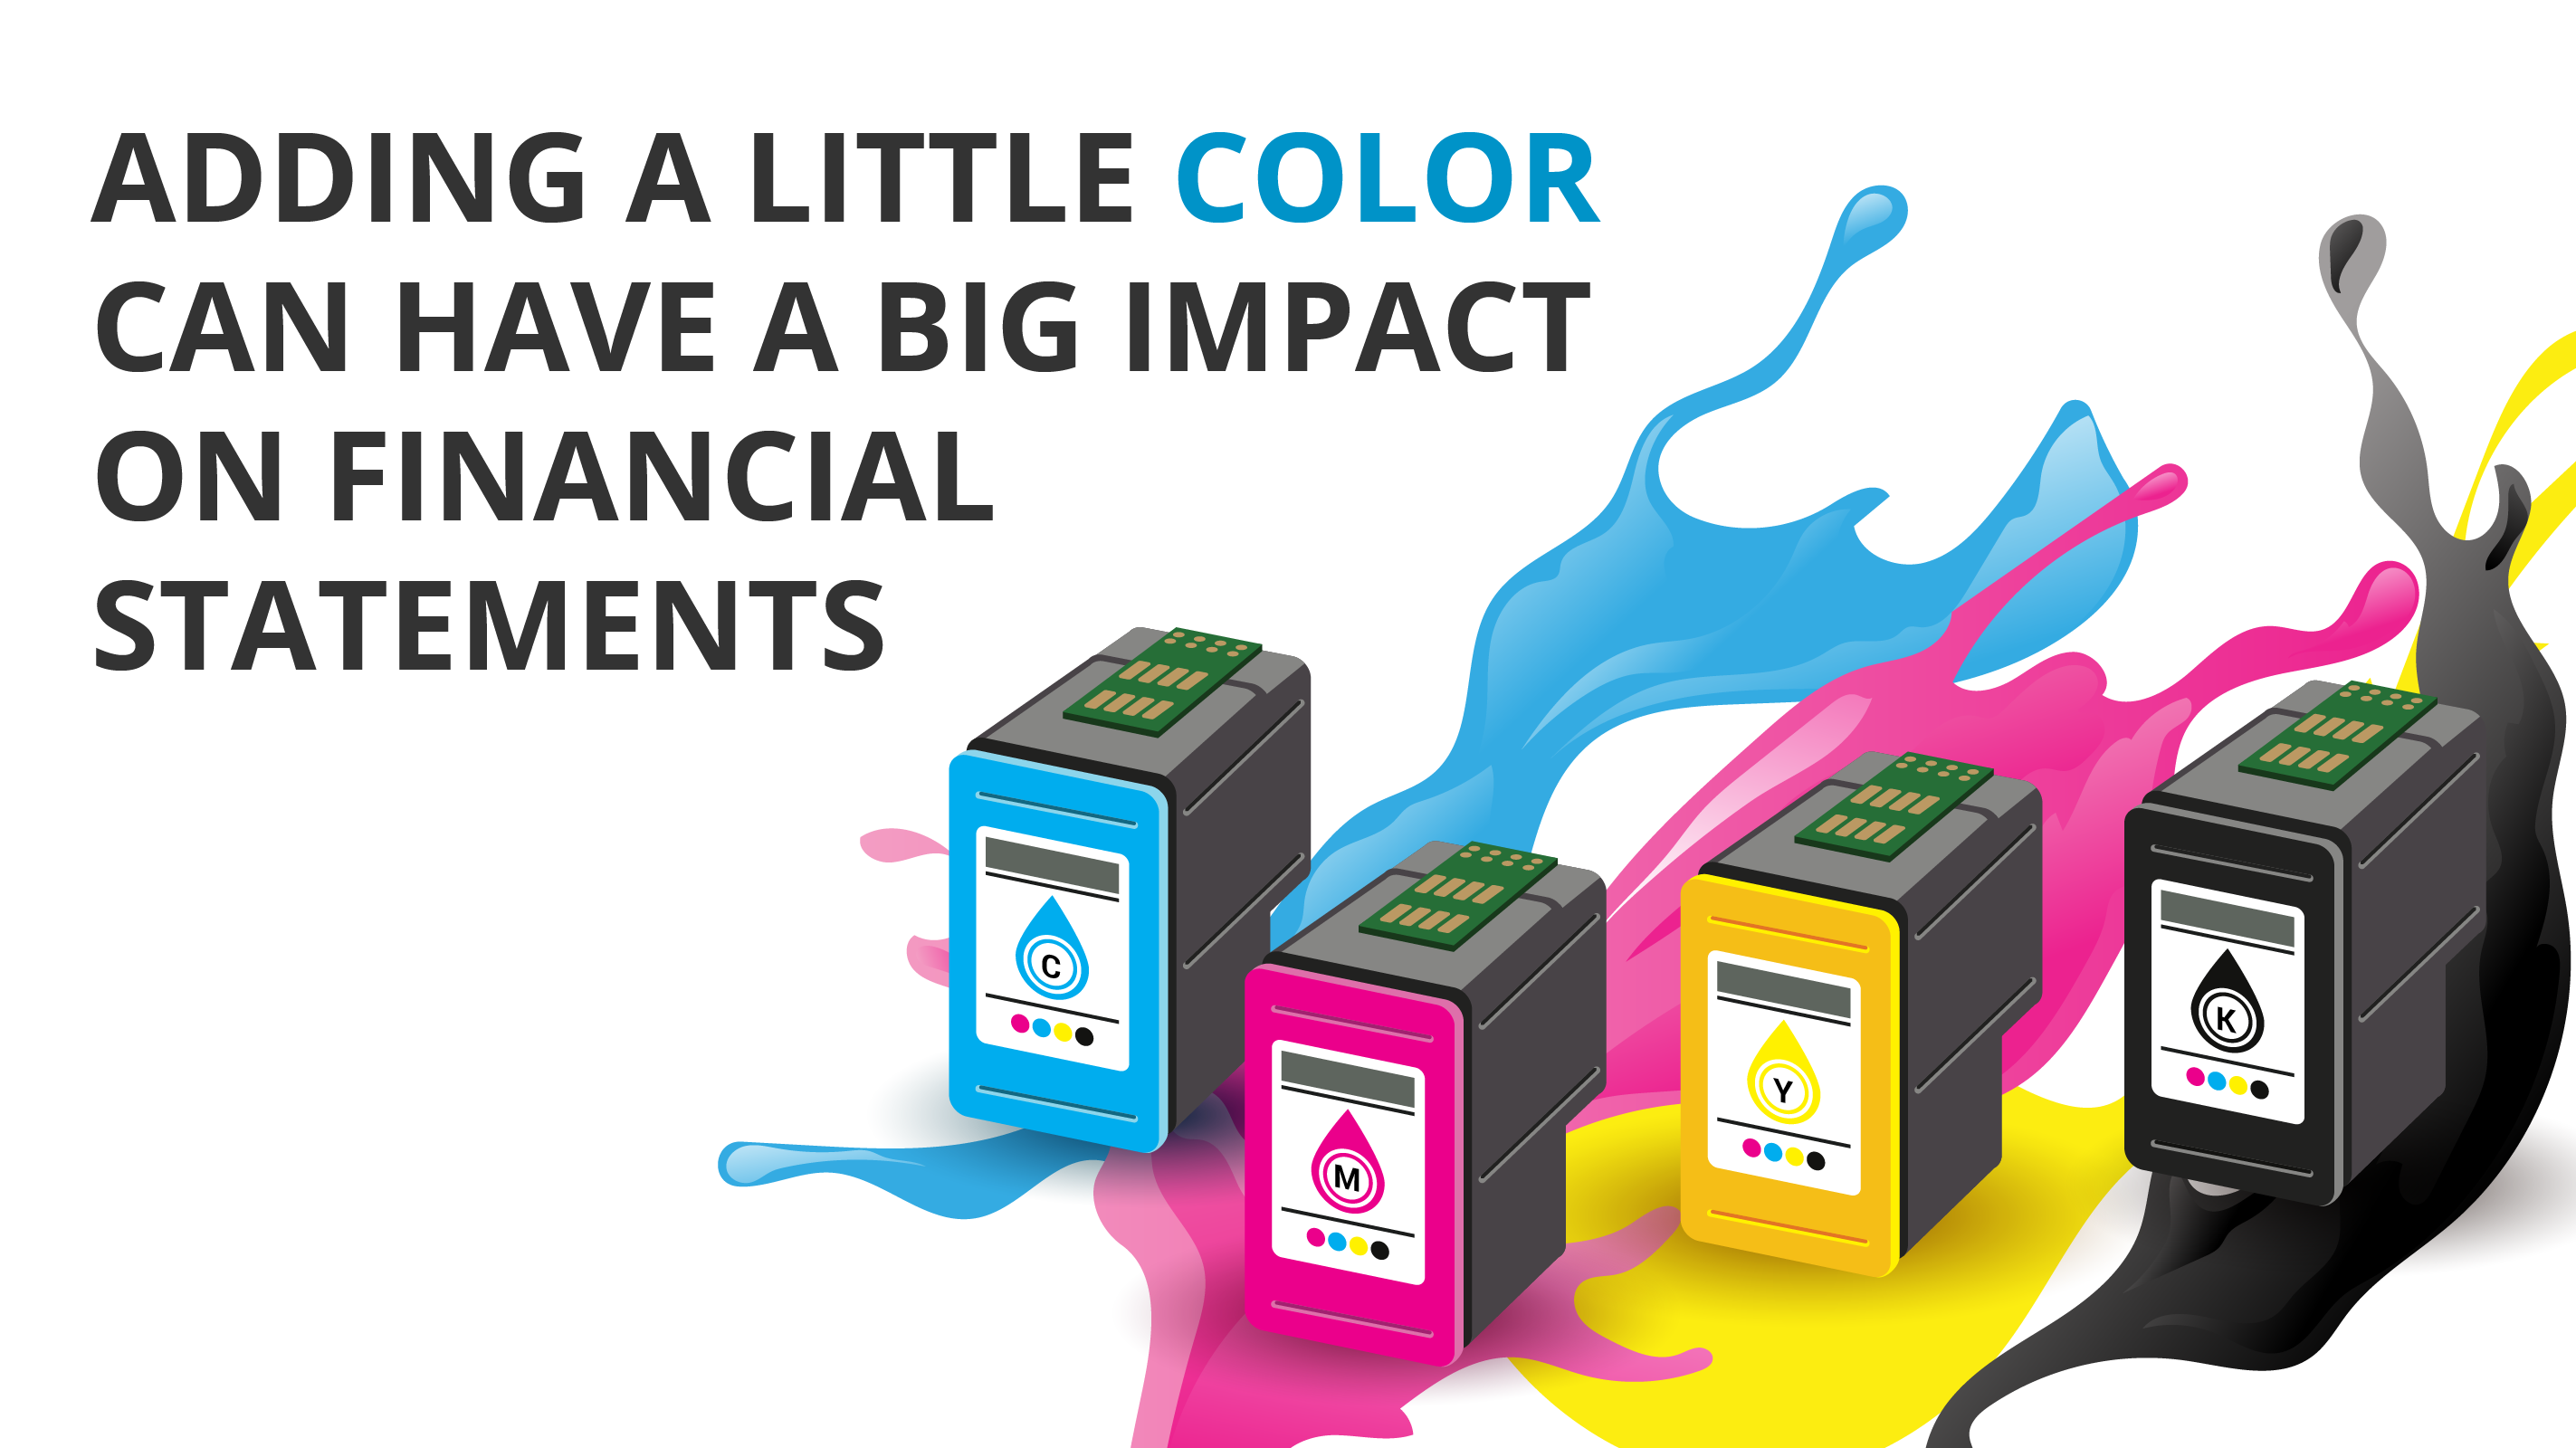 Title Image - Adding a Little Color can have a Big Impact on Financial Statements